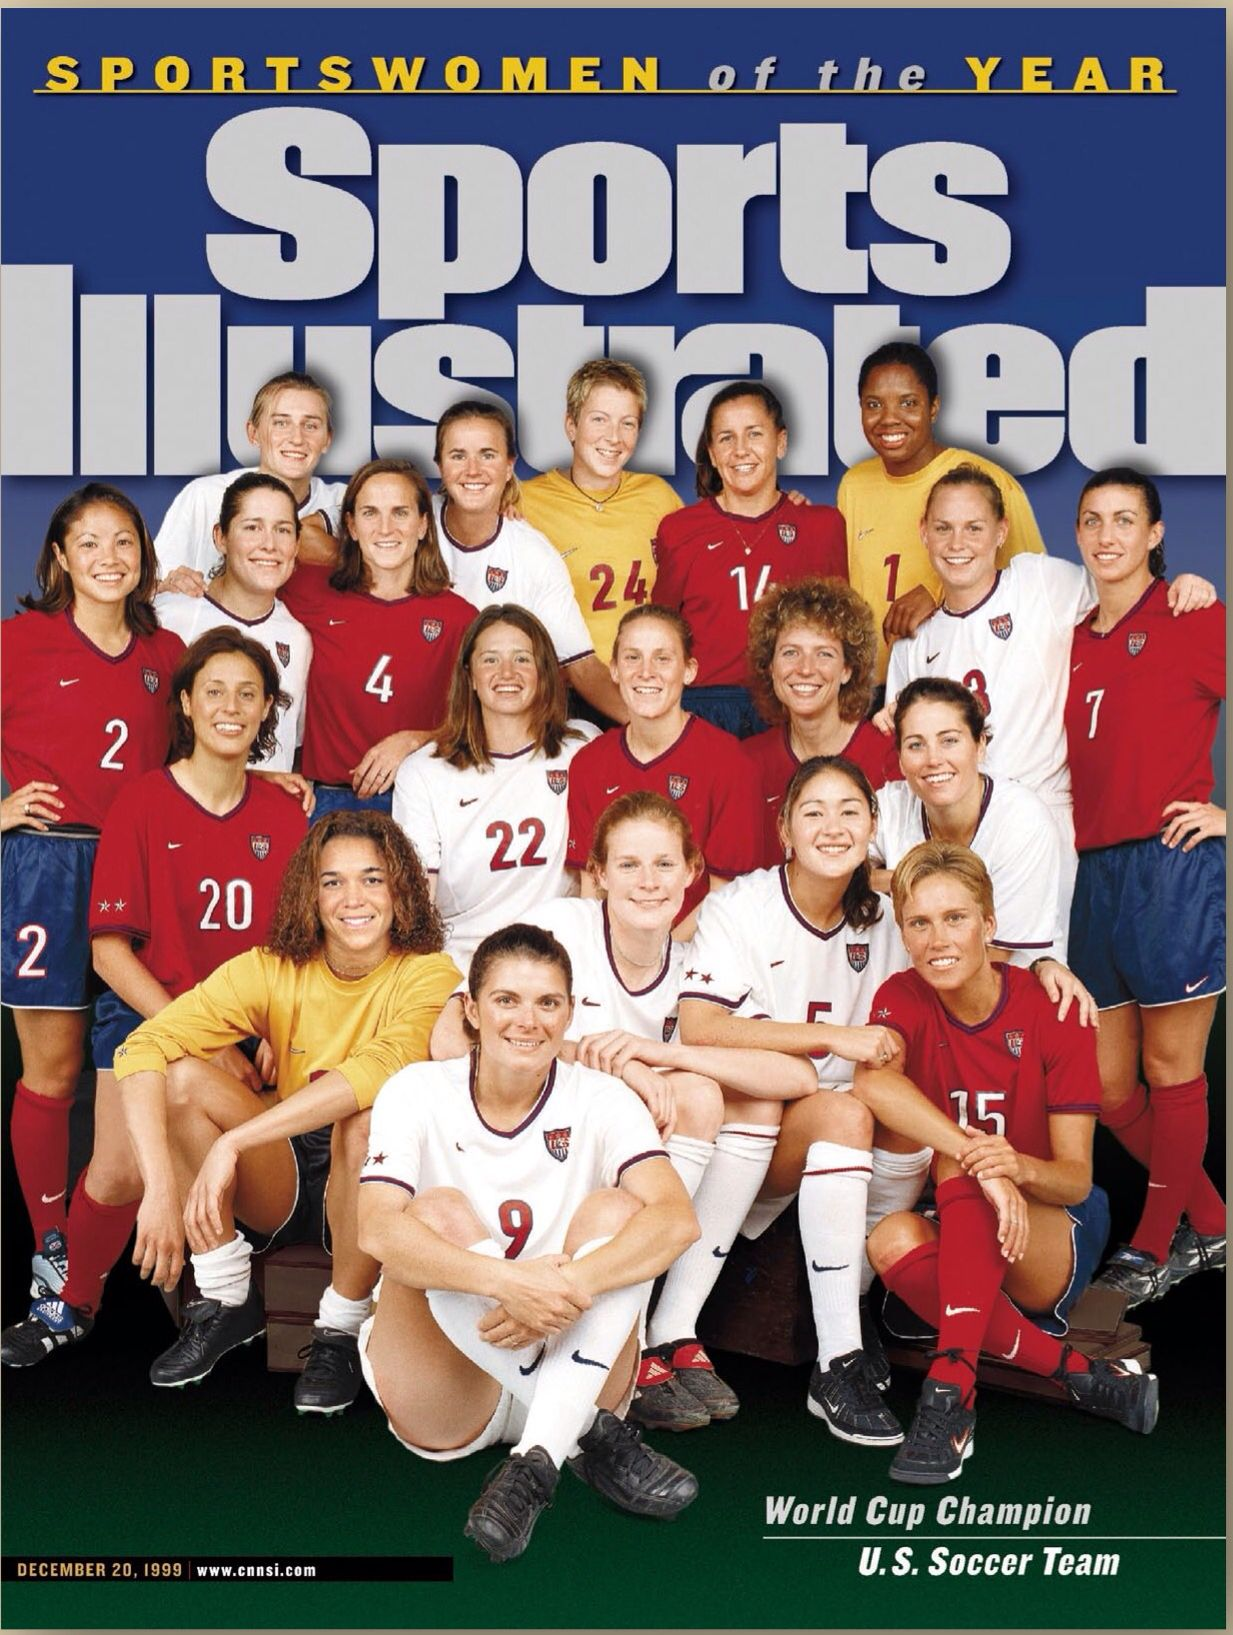 U S Women S World Cup Soccer Team 1999 Sportswomen Of The Year Sports Illustrated Cover Si Com Covers Usa Soccer Women Usa Soccer Team Women S Soccer Team